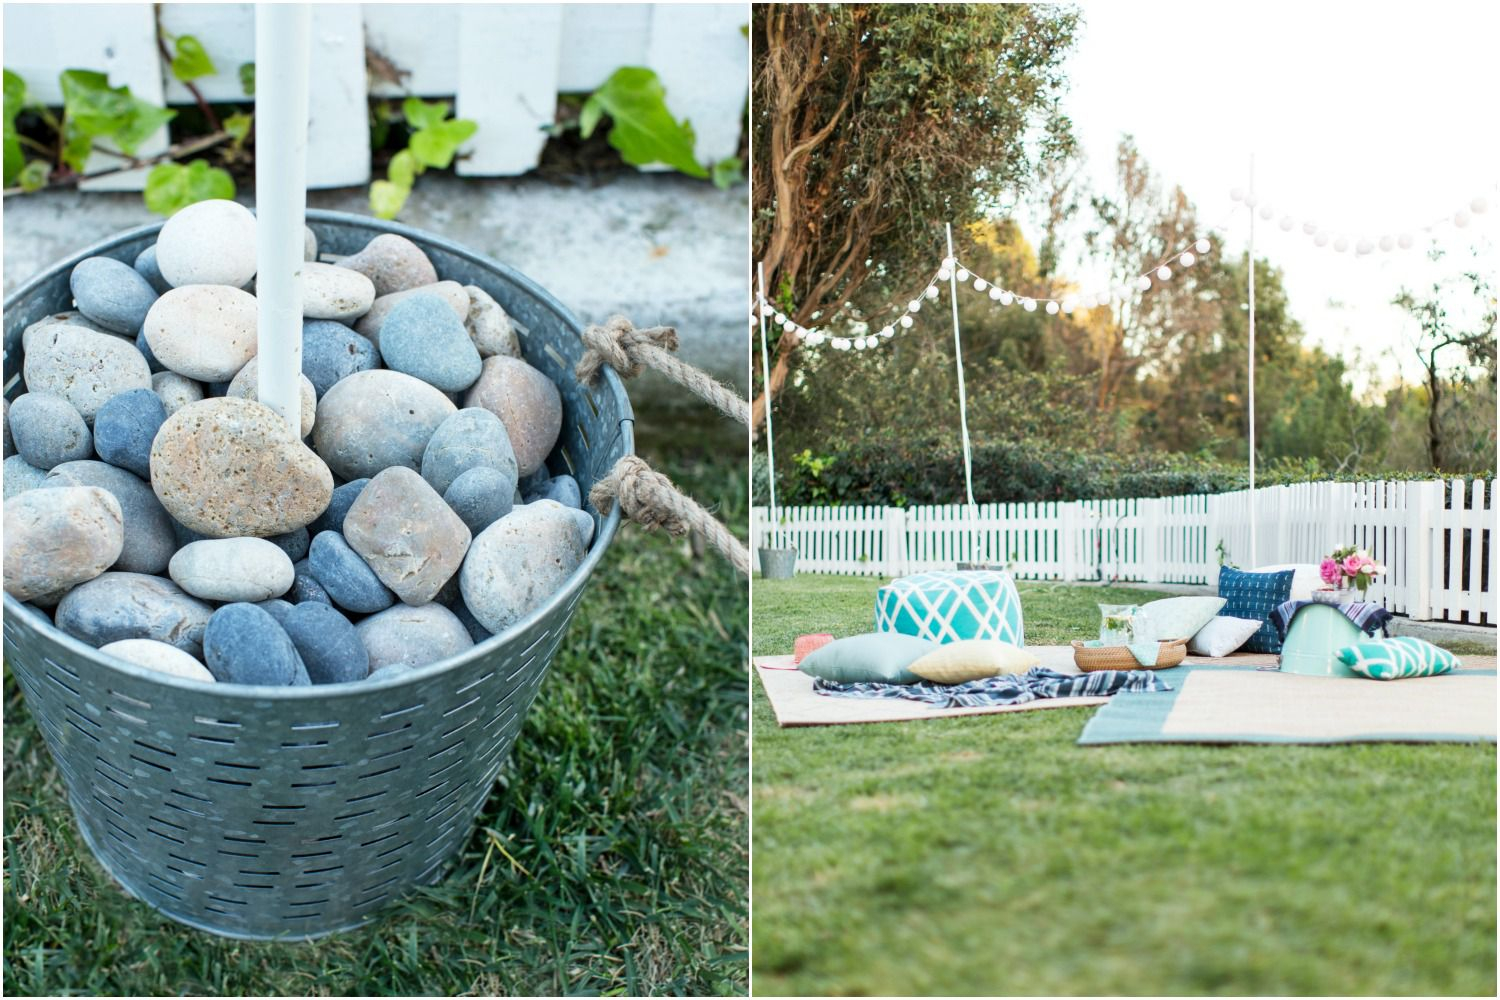 45 Best Backyard Bbq Party Ideas Summer Party Tips throughout 11 Some of the Coolest Ideas How to Craft Backyard Bbq Ideas Decorations